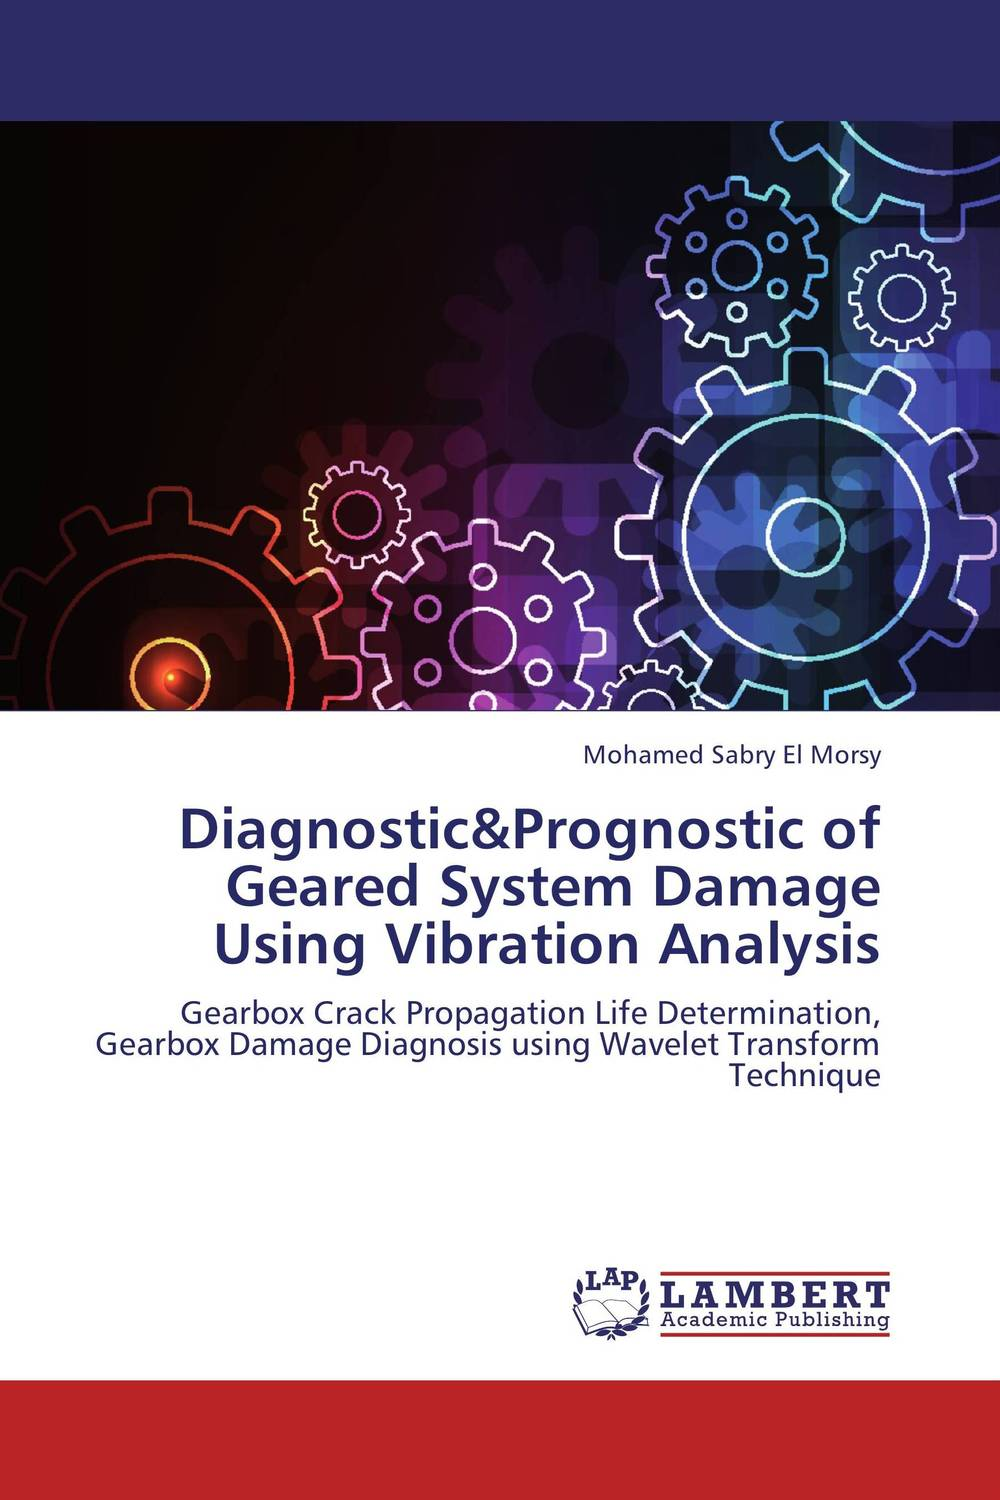 Фото Diagnostic&Prognostic of Geared System Damage Using Vibration Analysis finance and investments